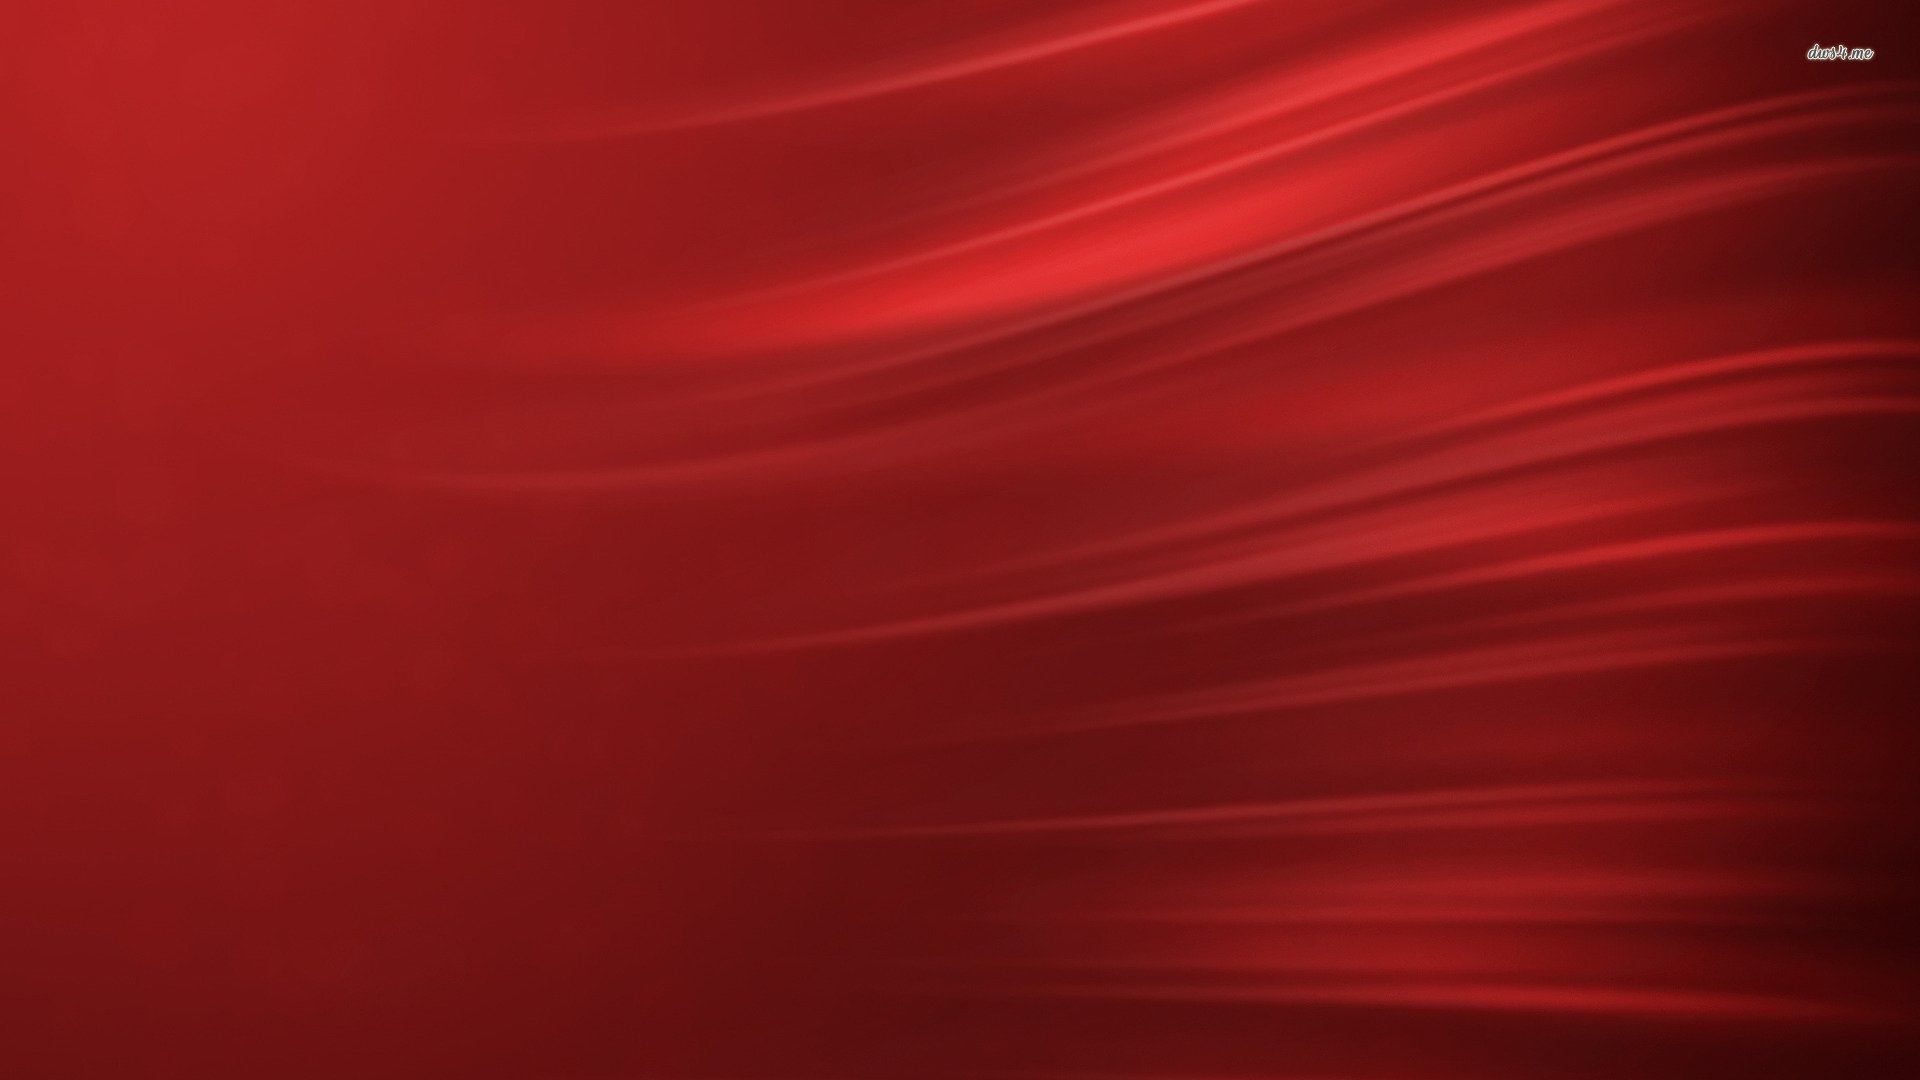 Red Abstract wallpaper | 1920x1080 | #57743